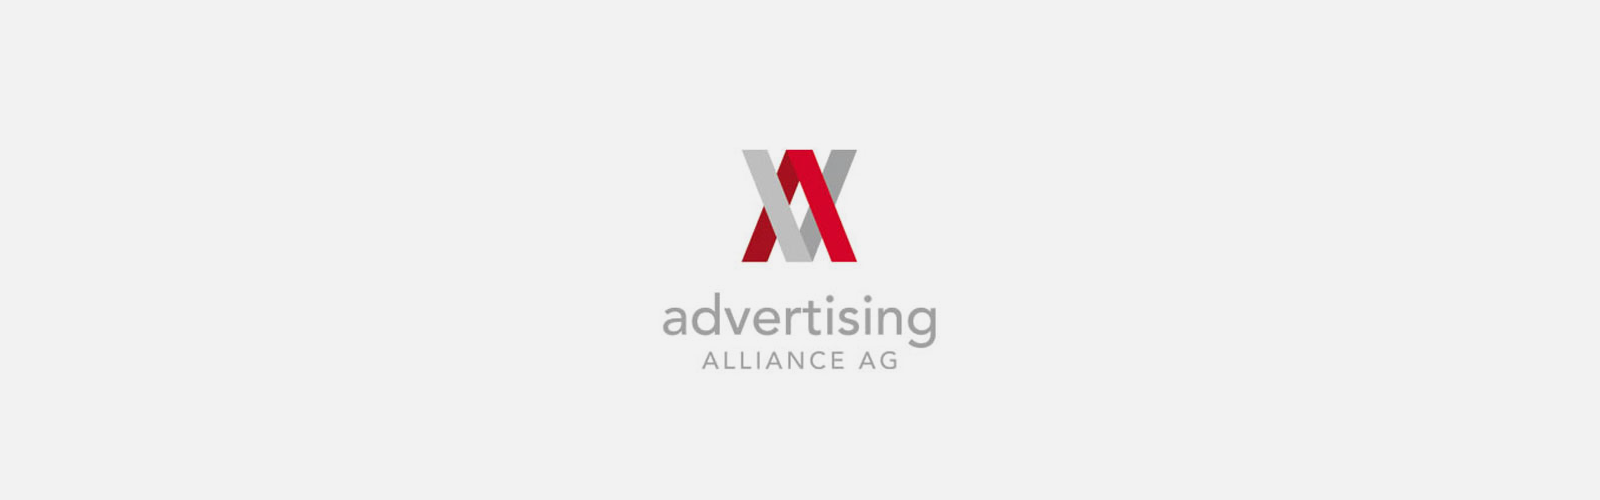 Advertising Alliance